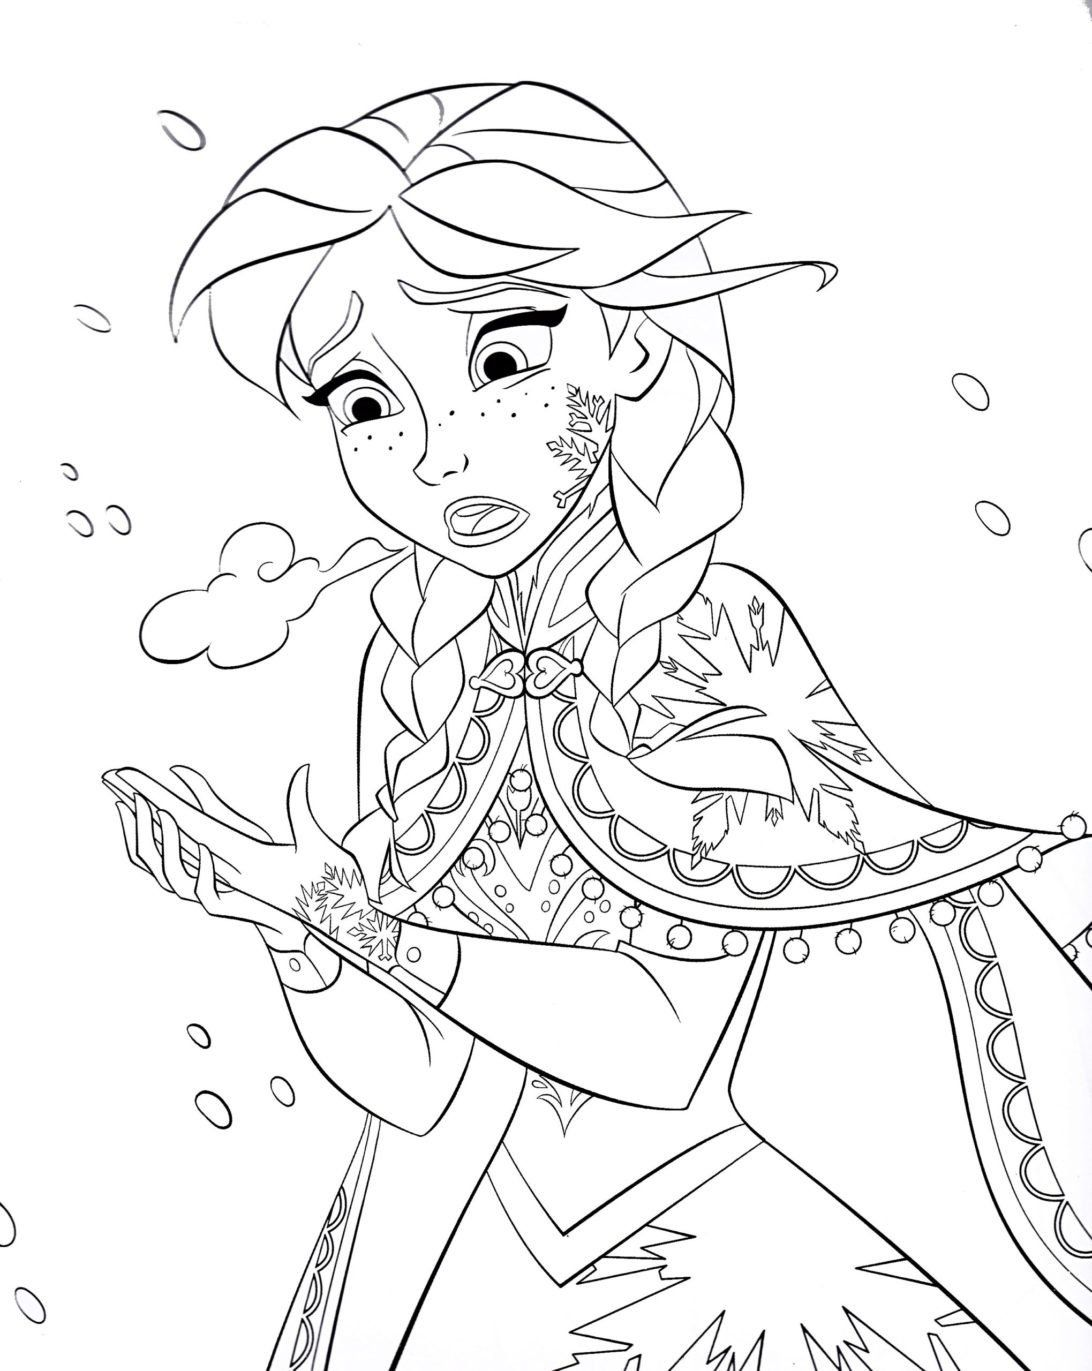 Kawaii Disney Coloring Pages Coloring Pages Best Coloring Cute Frozen Disney Pdf At In 2020 Elsa Coloring Pages Princess Coloring Pages Disney Coloring Pages